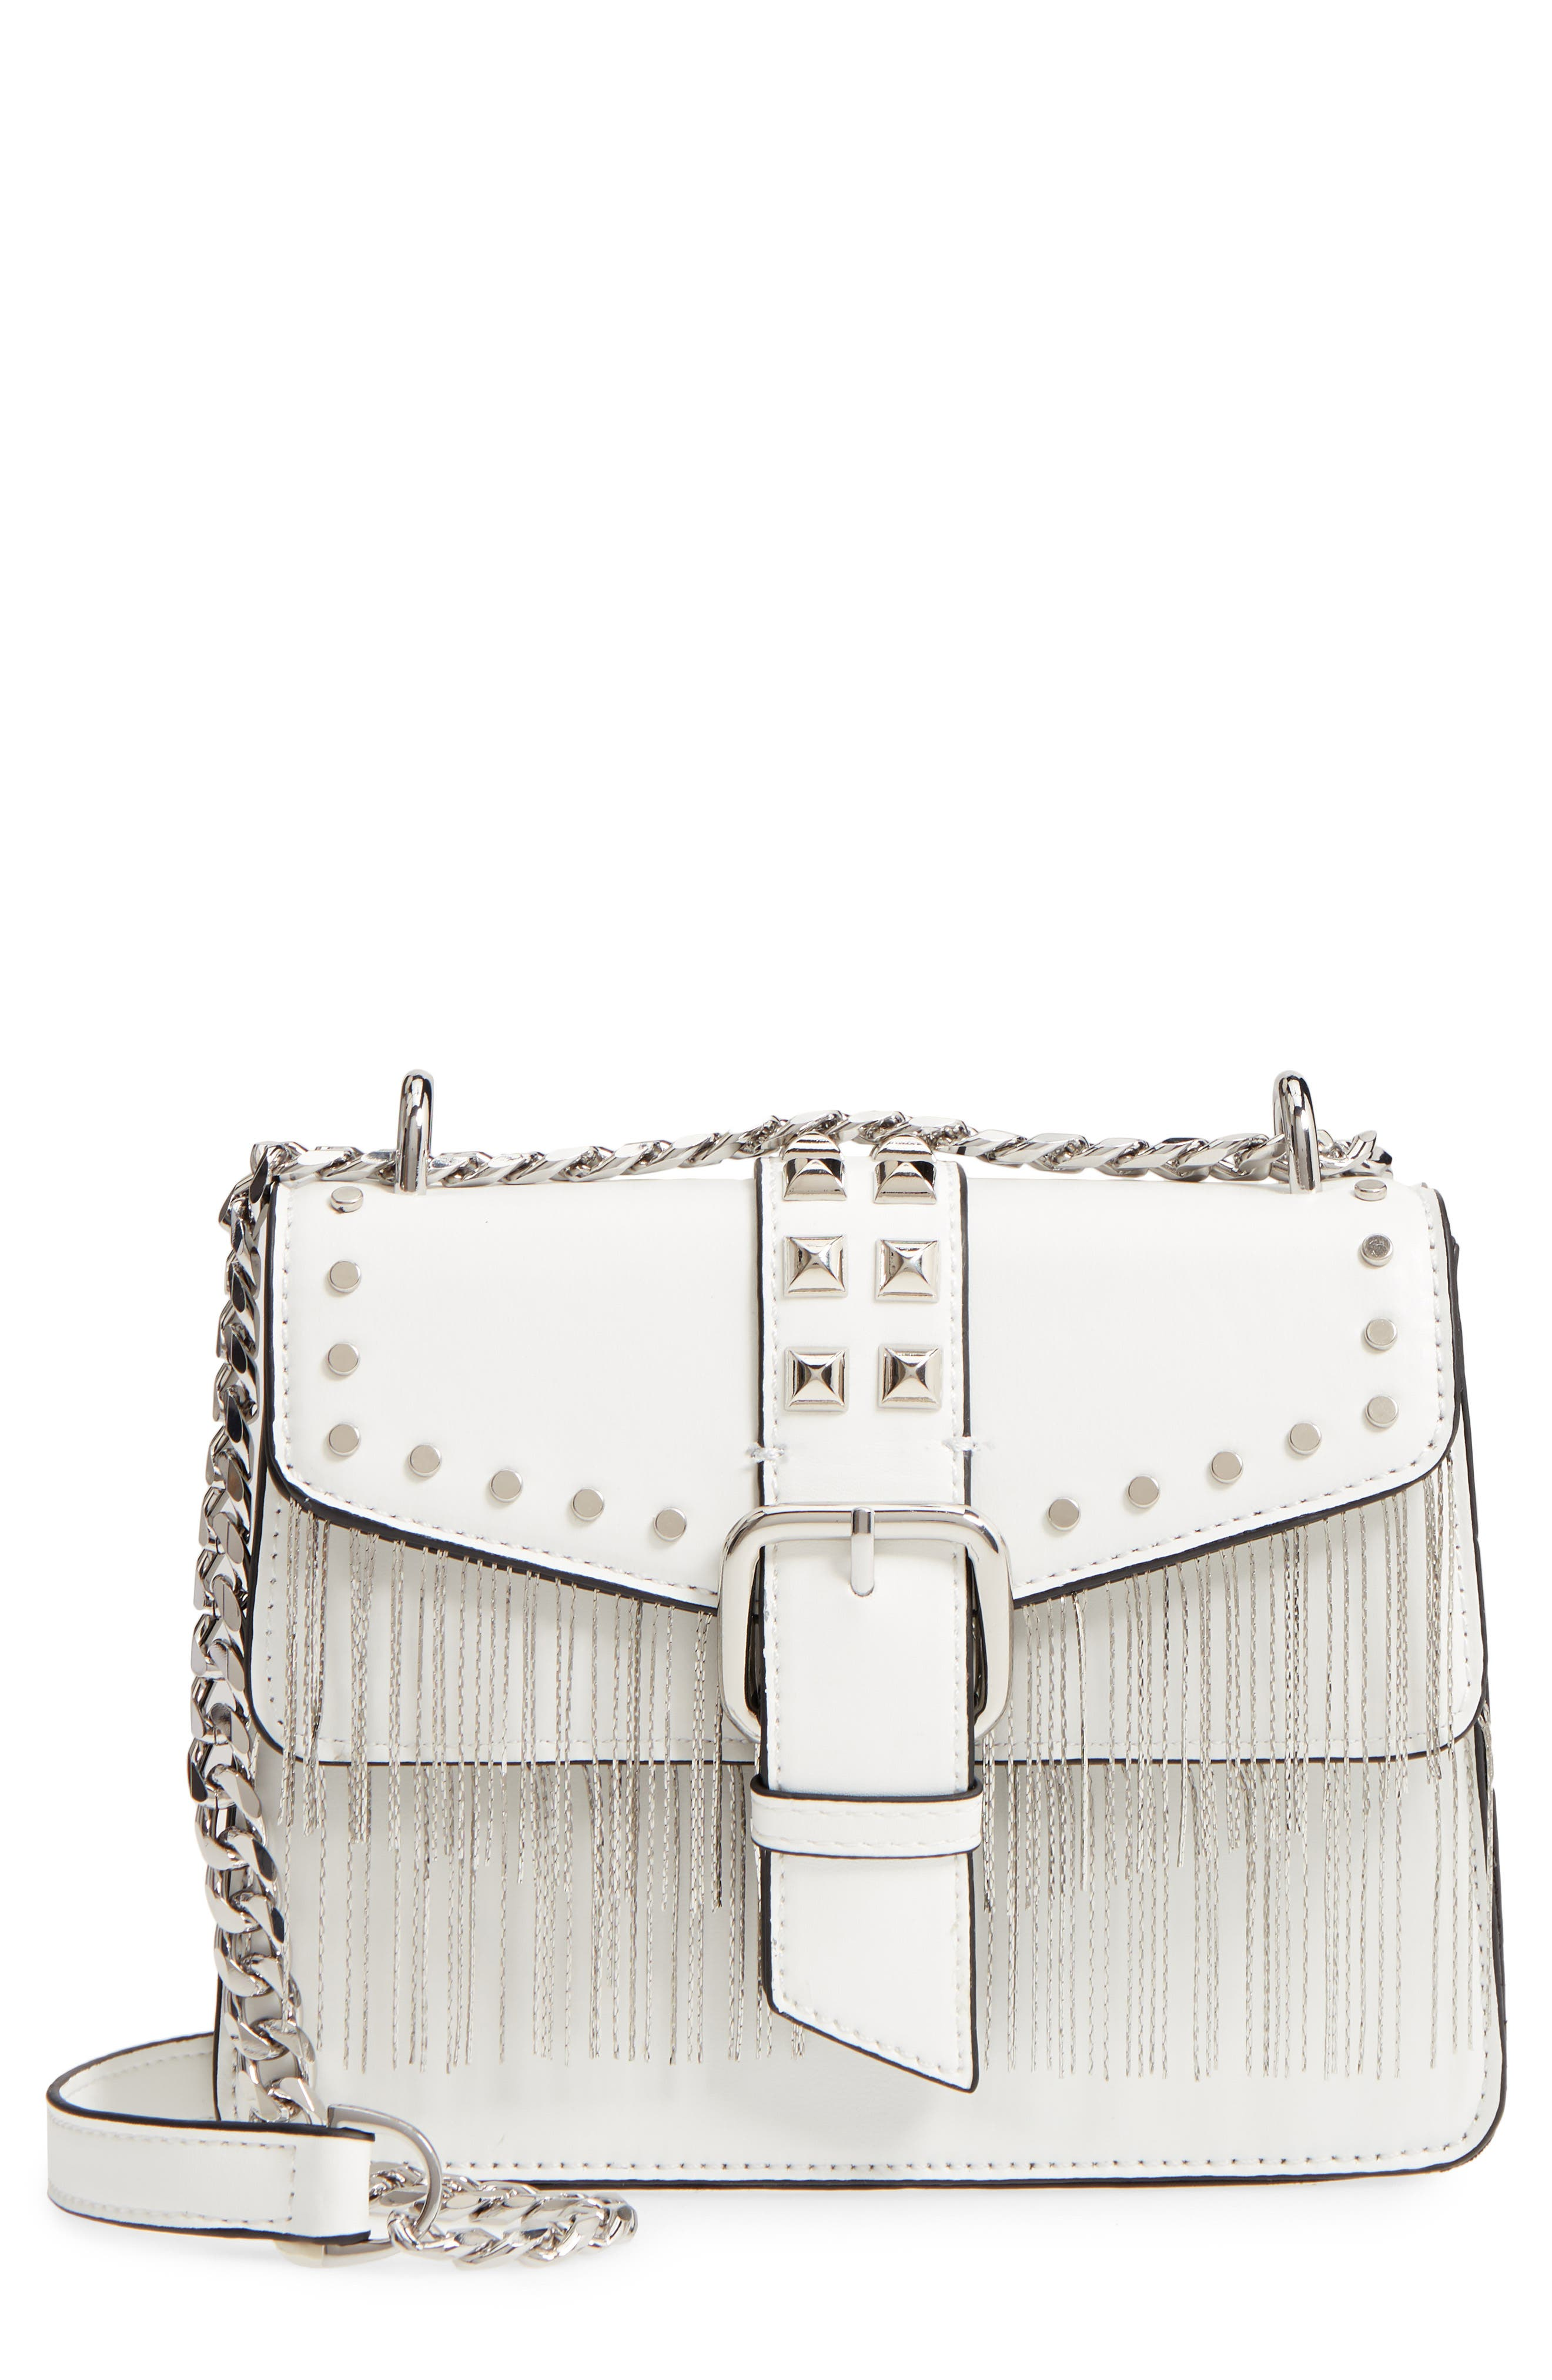 Shelby Studded Faux Leather Crossbody Bag,                             Main thumbnail 1, color,                             100